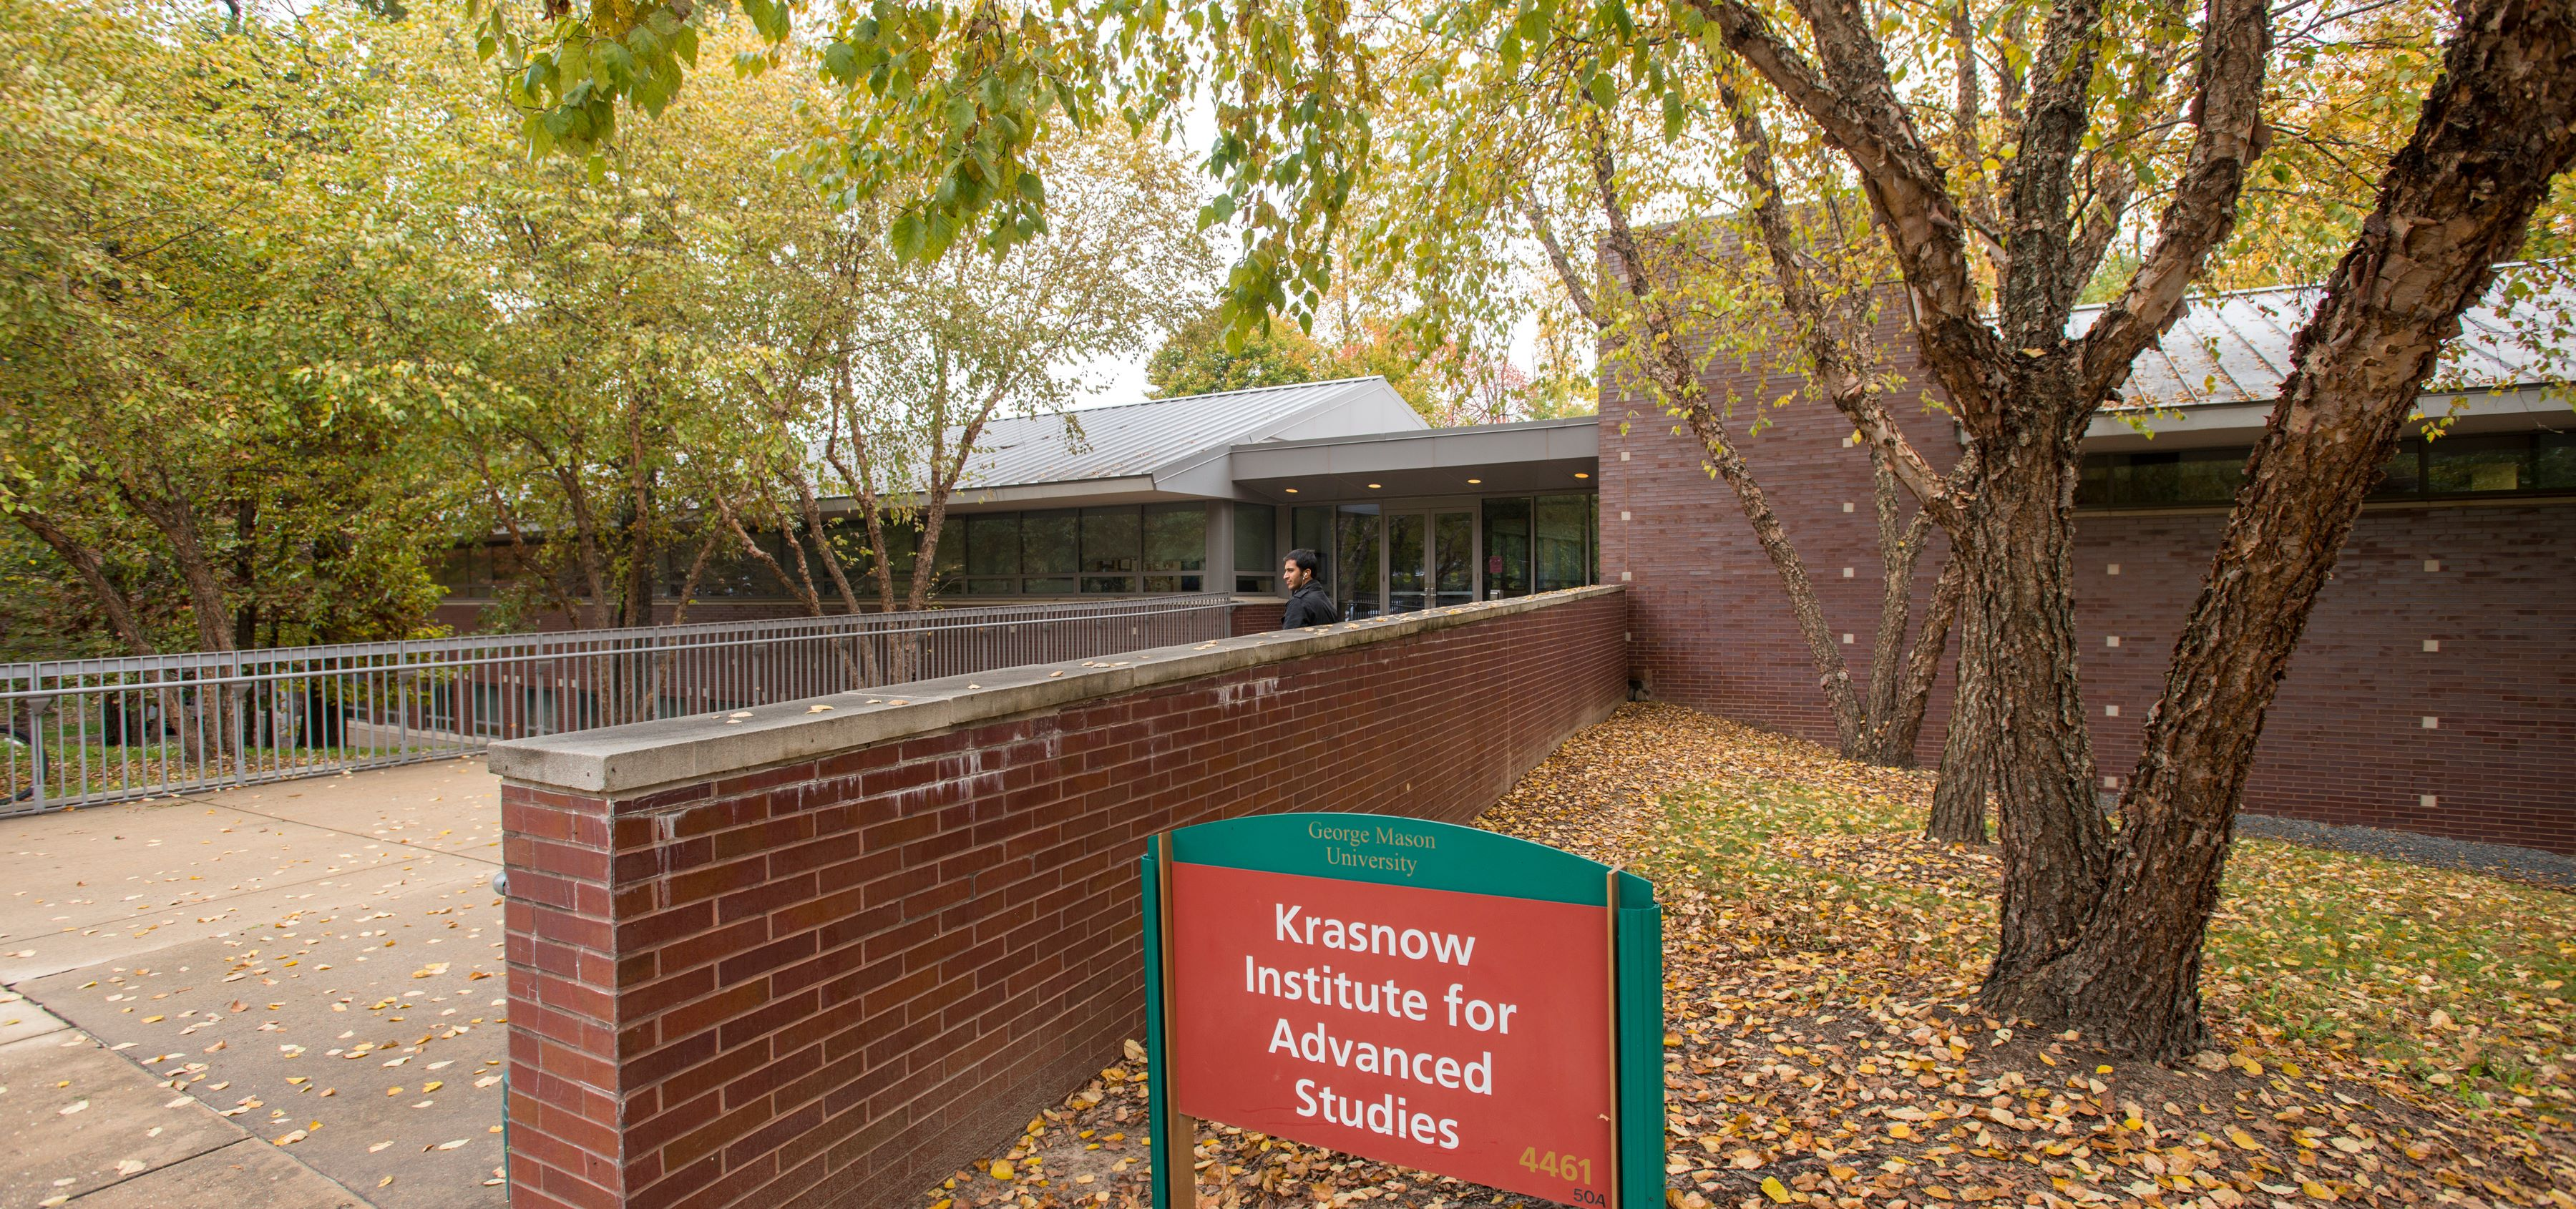 George Mason University Krasnow Institute